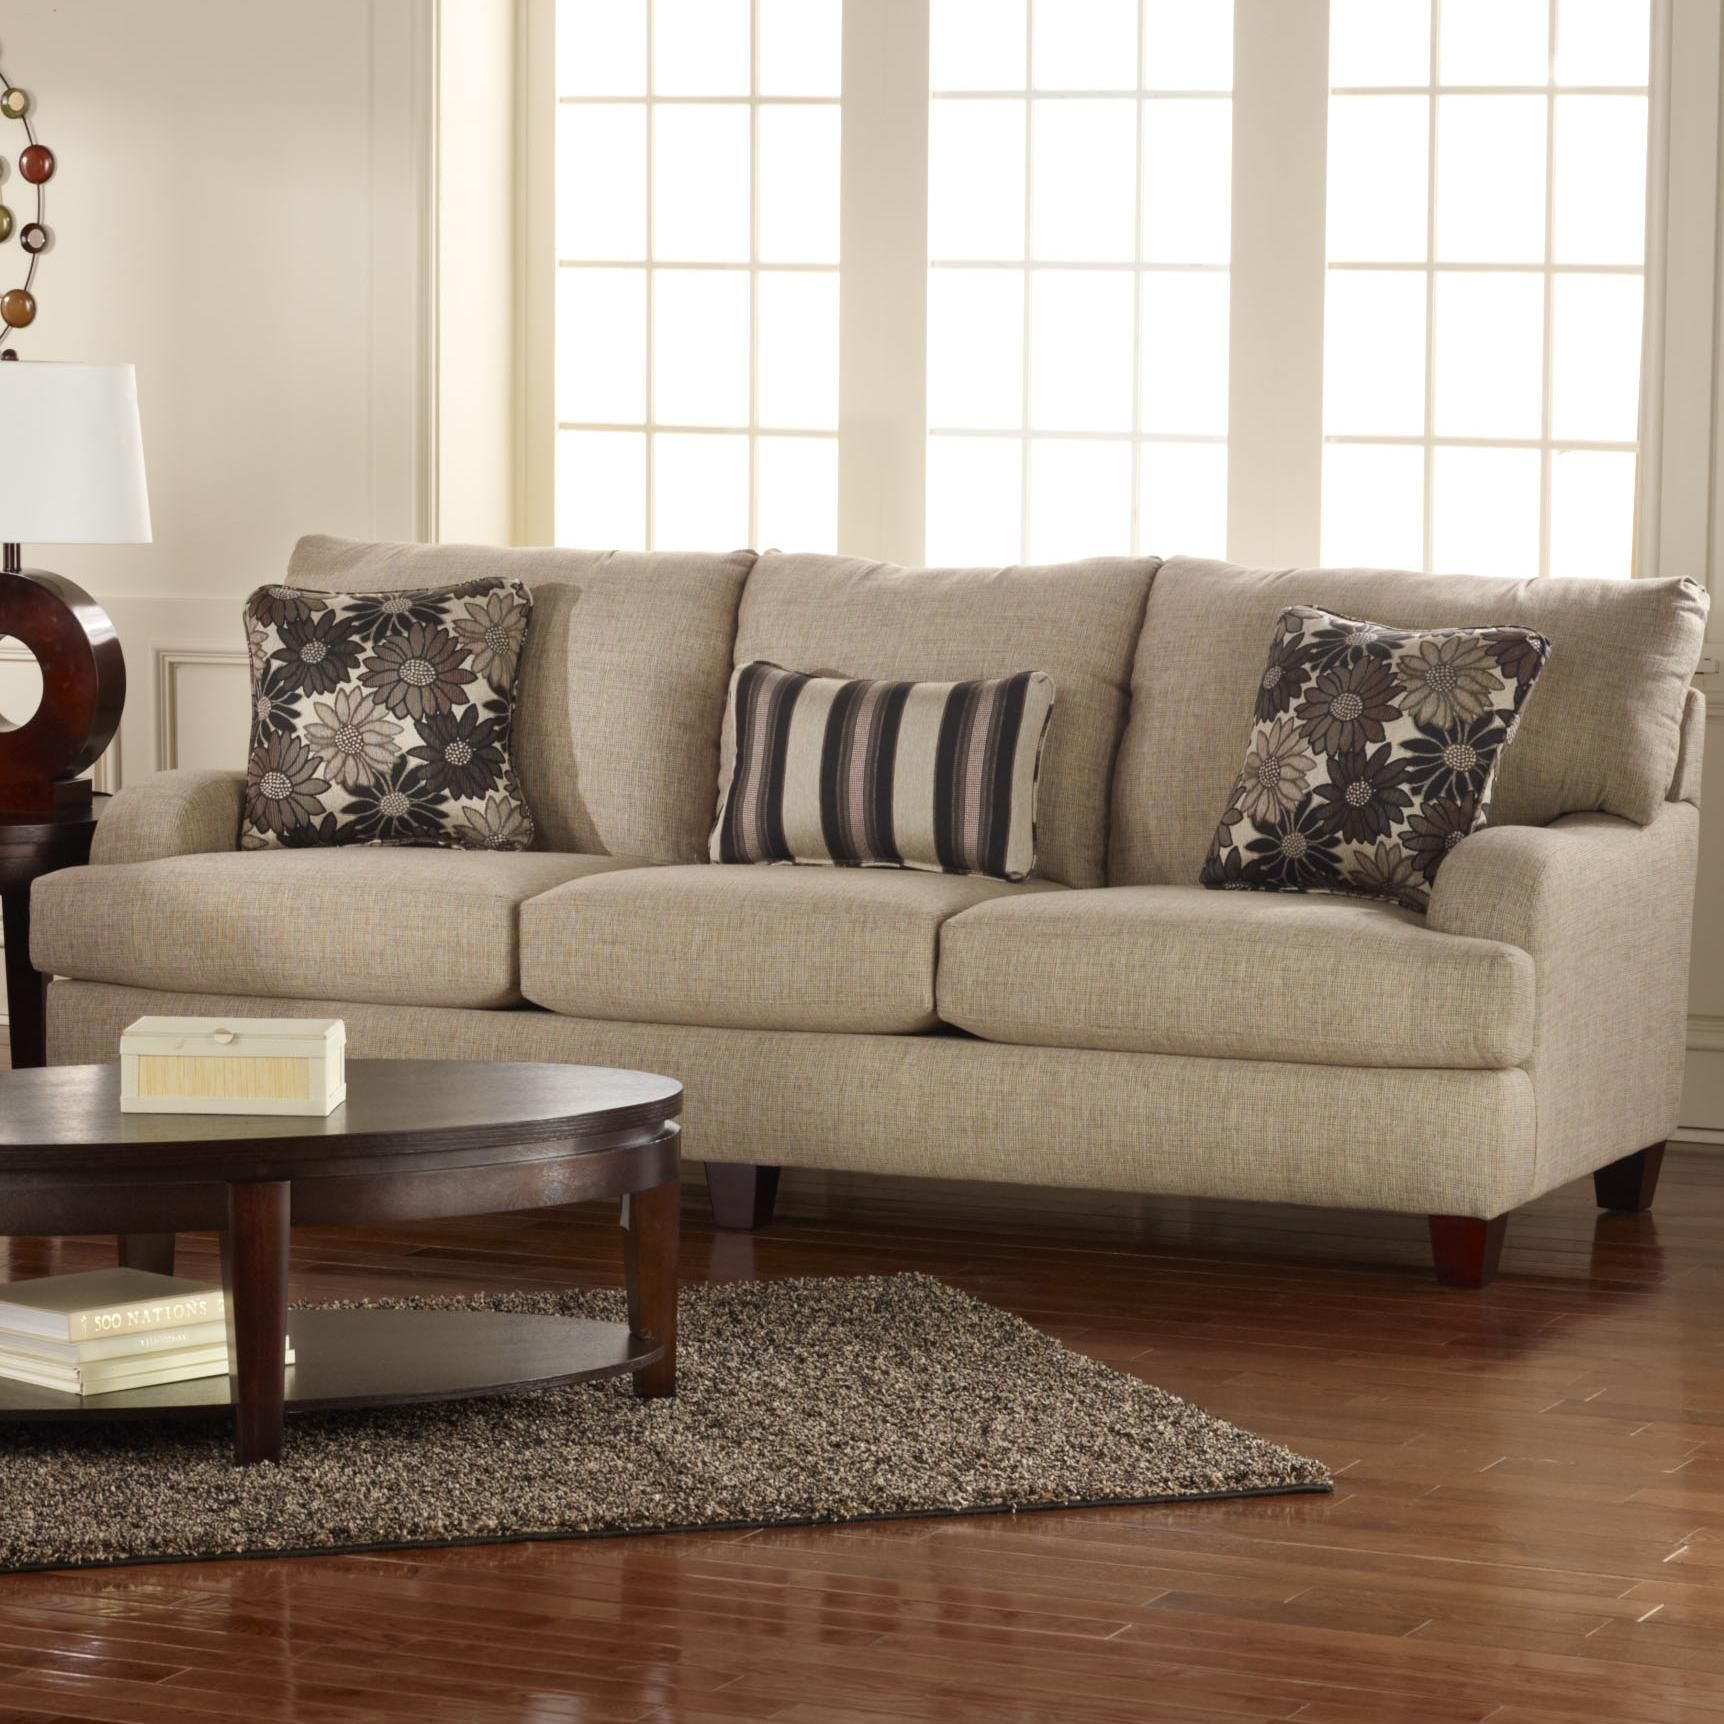 Dining Room Furniture San Diego Custom Marion Casual Styled Living Room Sofa With Beige Upholstery Design Inspiration